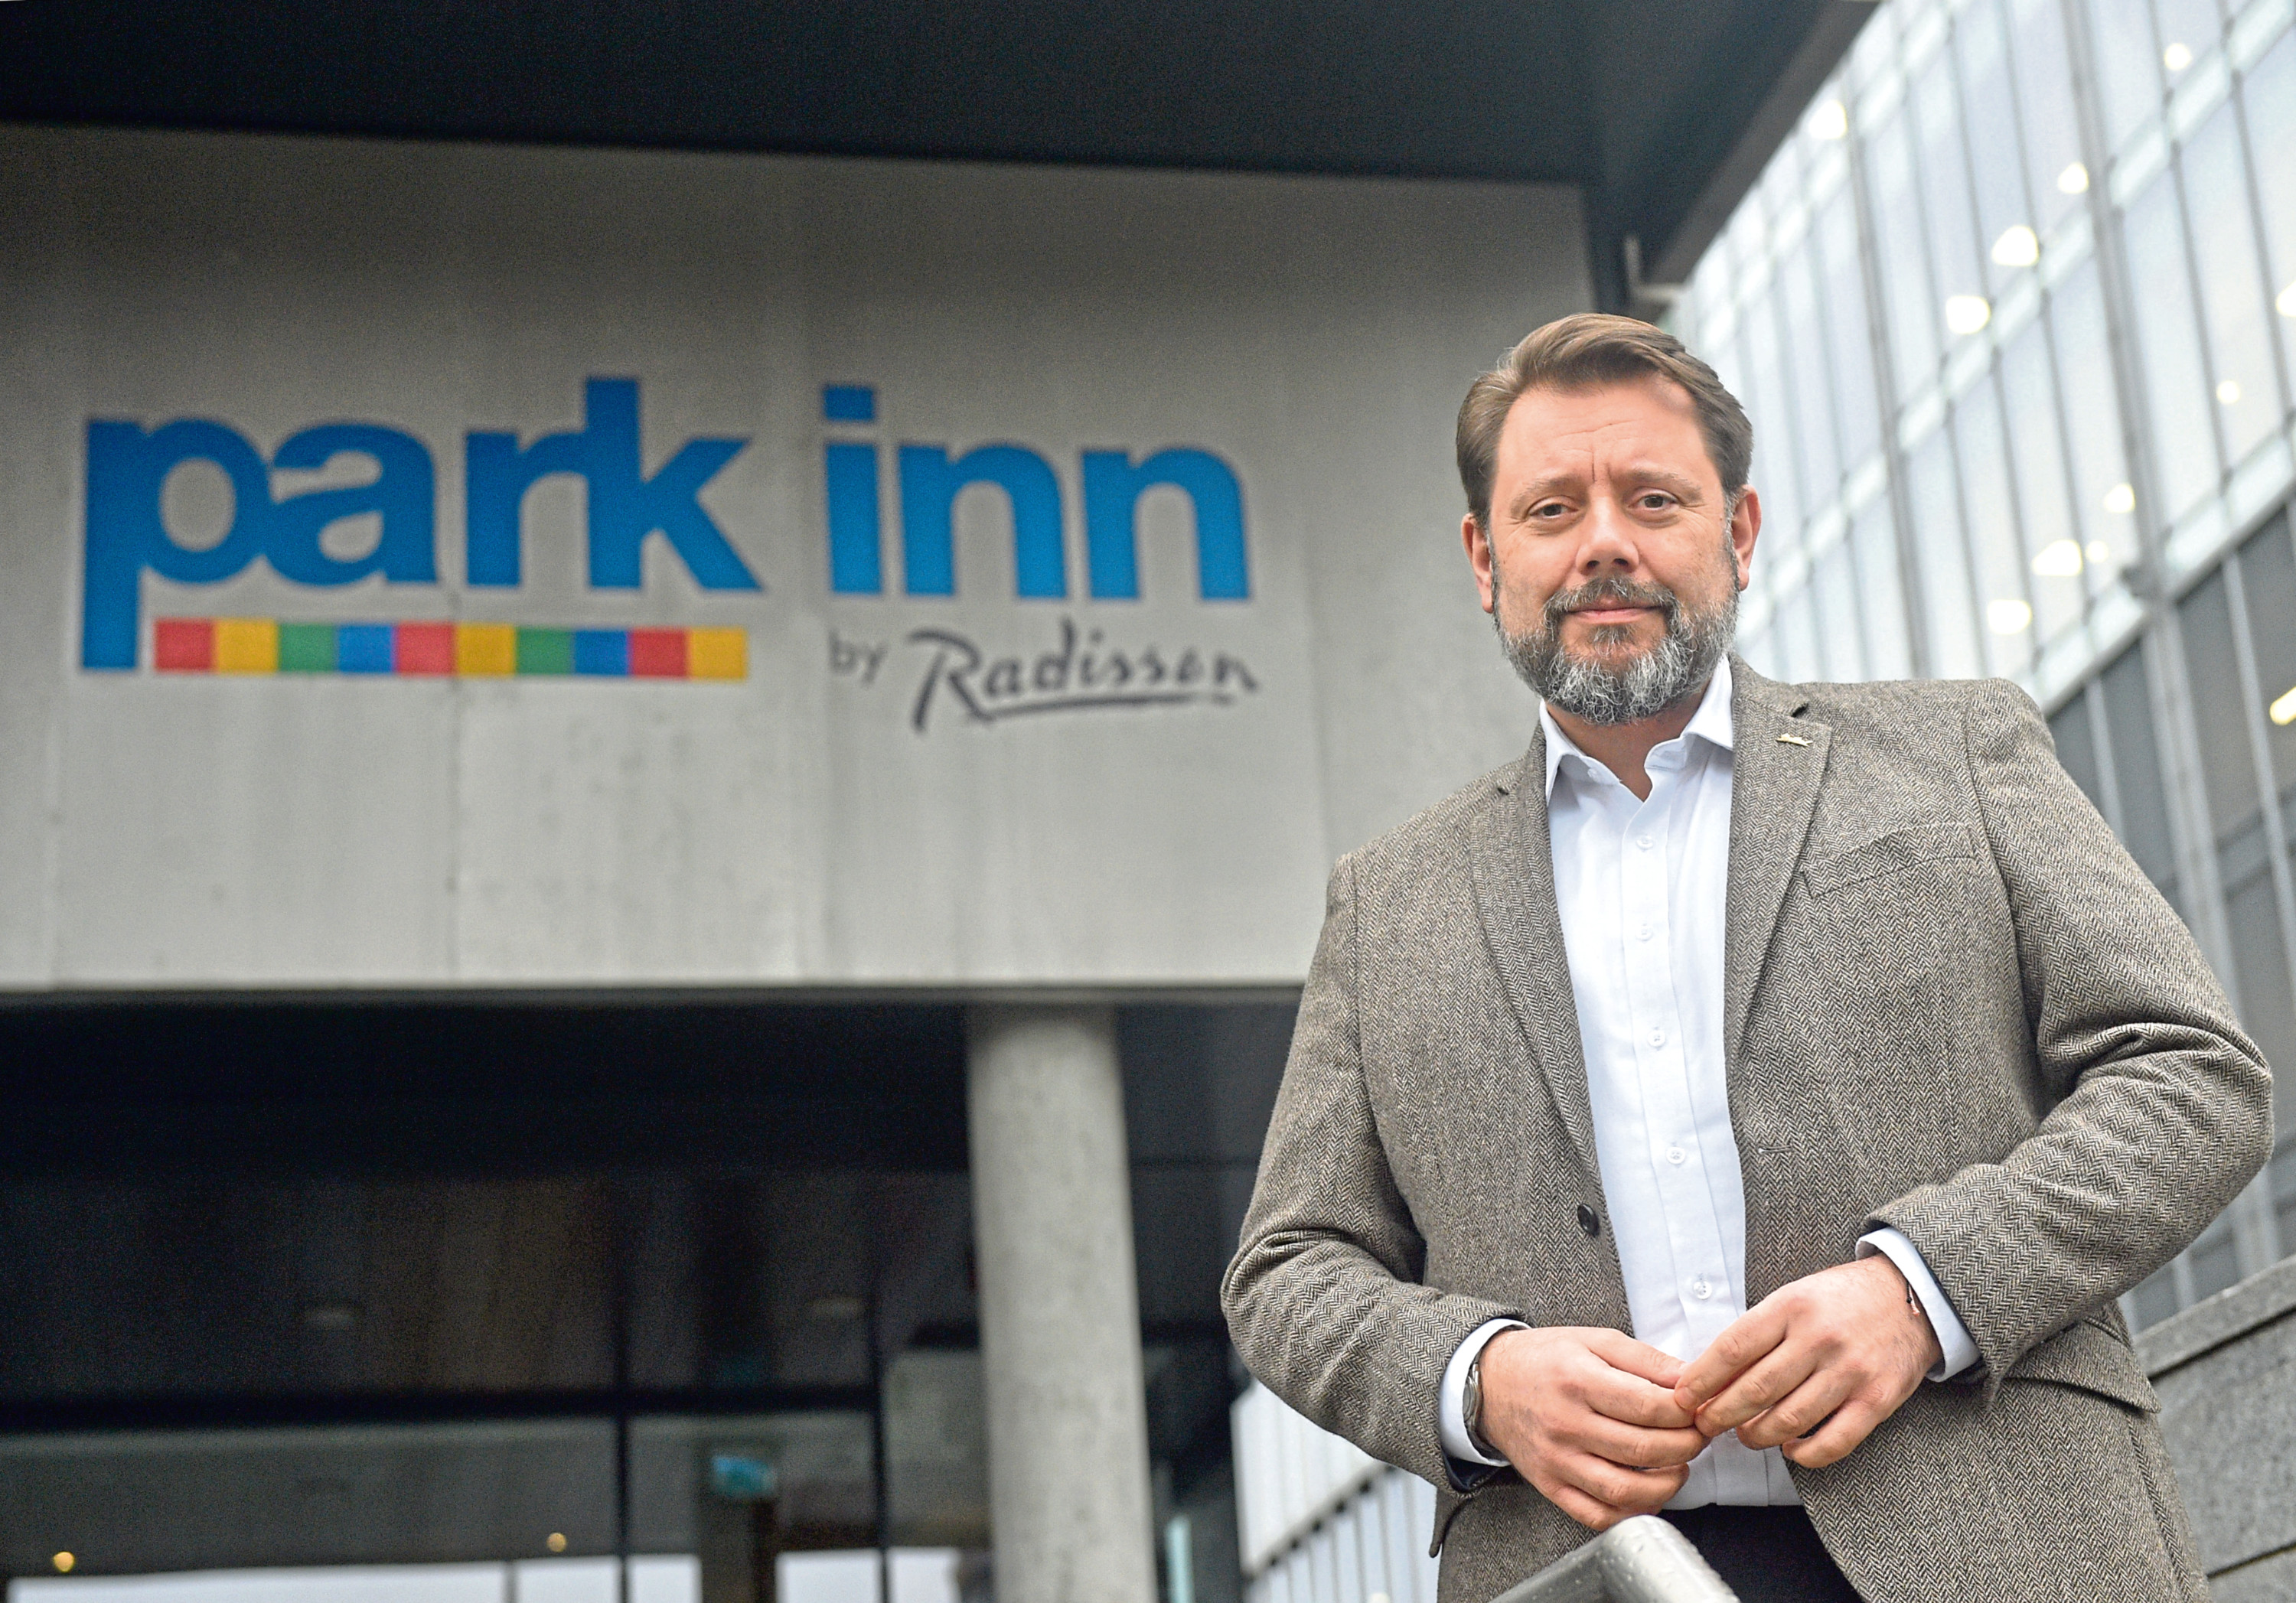 Frank Whitaker, general manager of Park Inn by Radisson Aberdeen